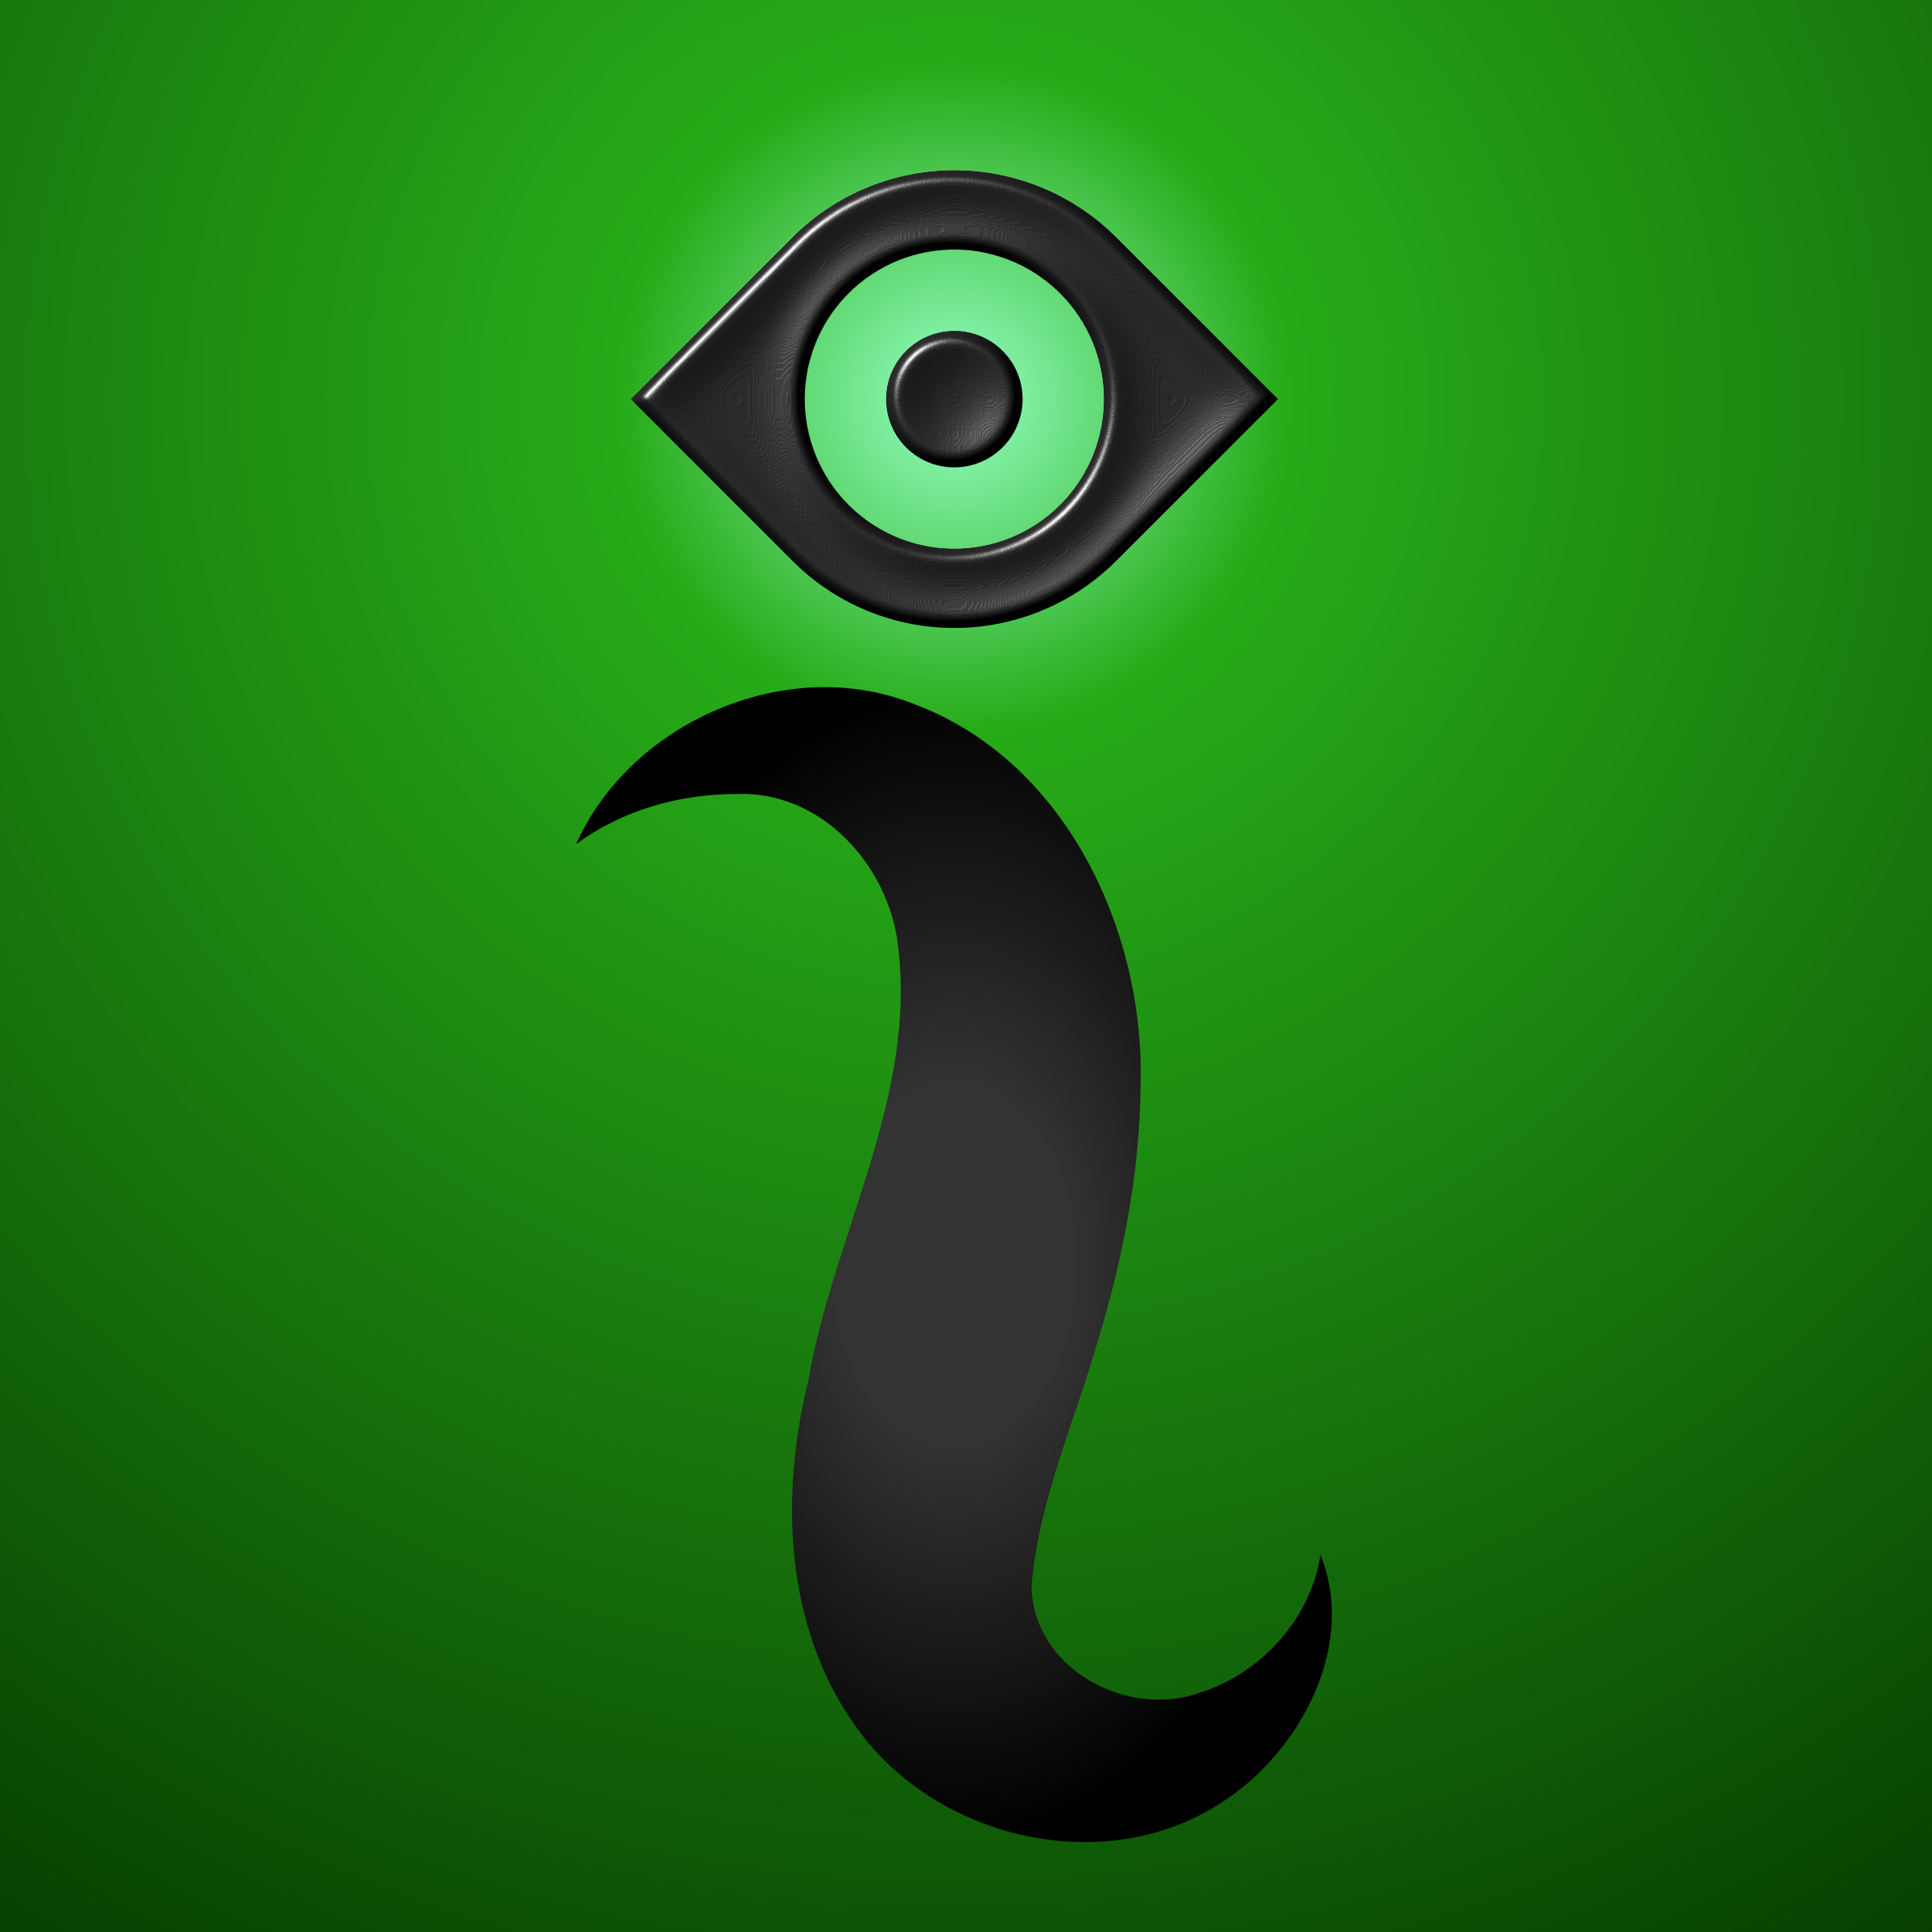 Eye-i by ihalseide